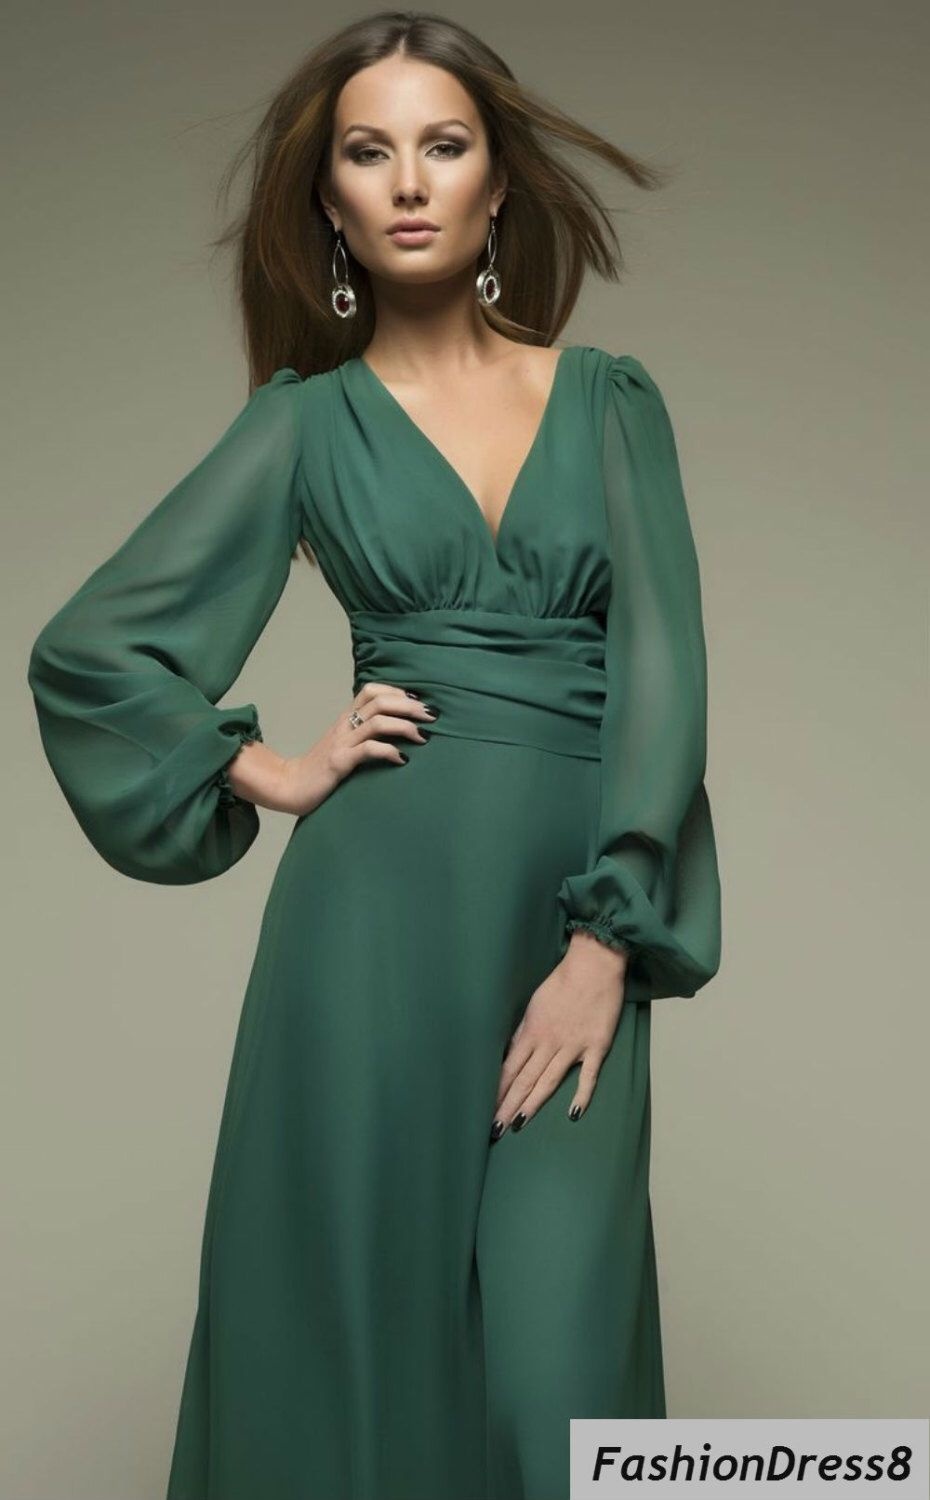 f82f849680421 Sale! Women's Emerald Green Long Sleeve Cut Out Plus Size Evening Chiffon  Maxi Dress by